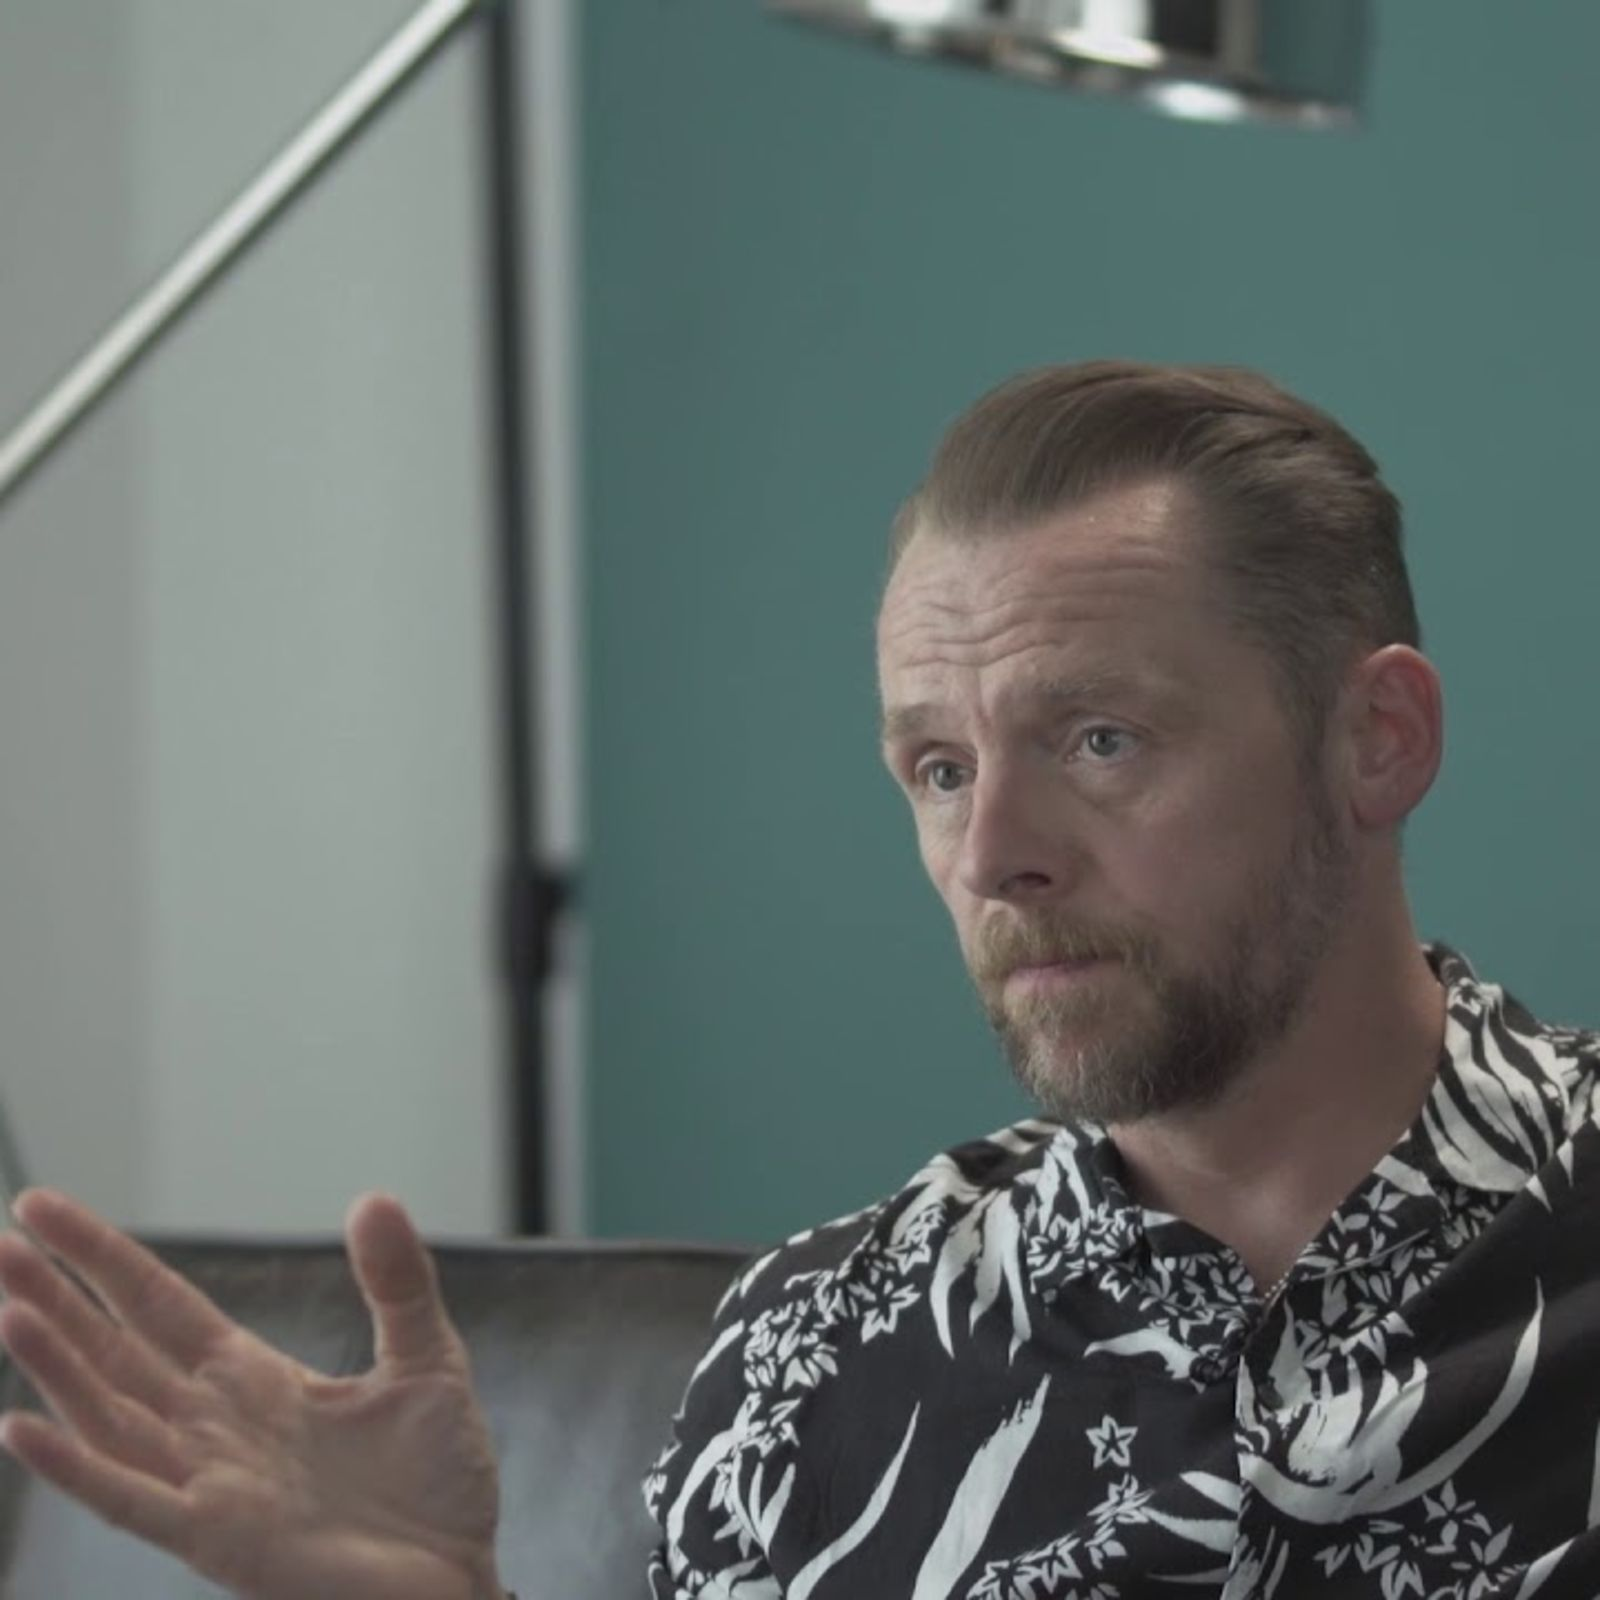 Simon Pegg plays Would You Rather?